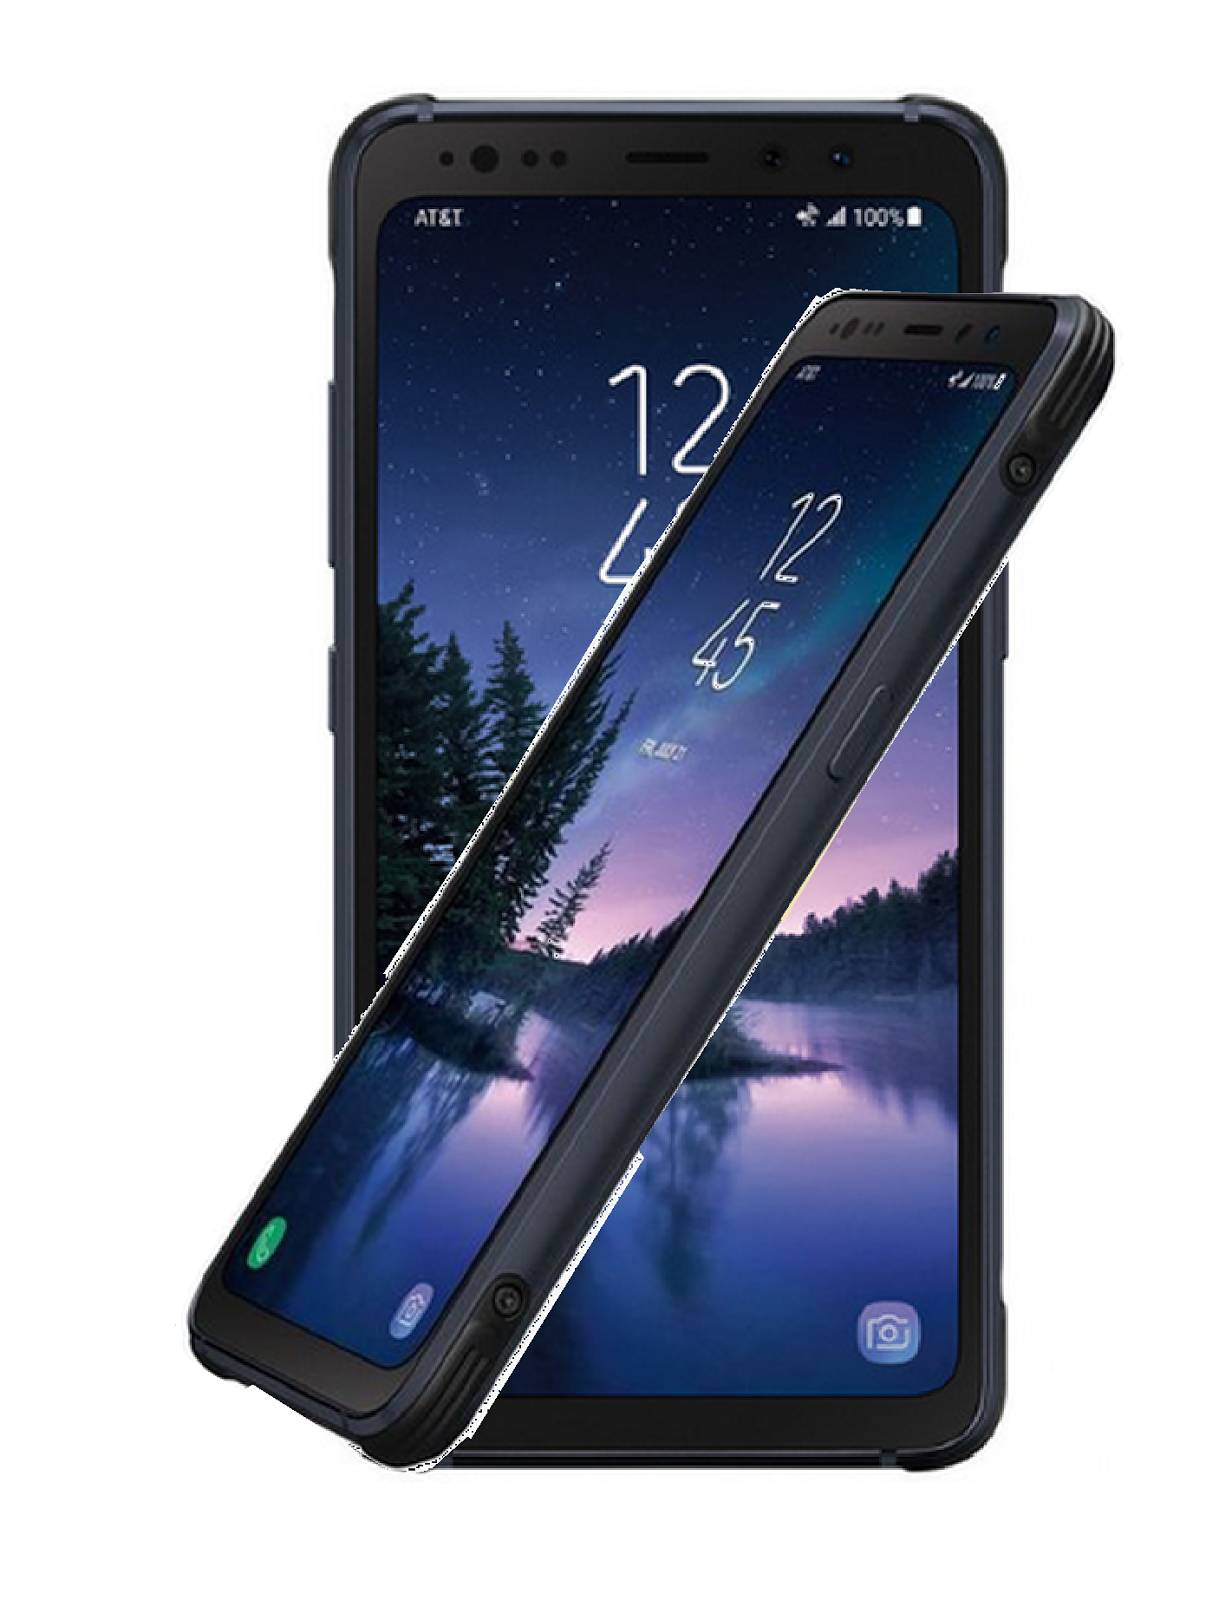 samsung s8 user guide pdf